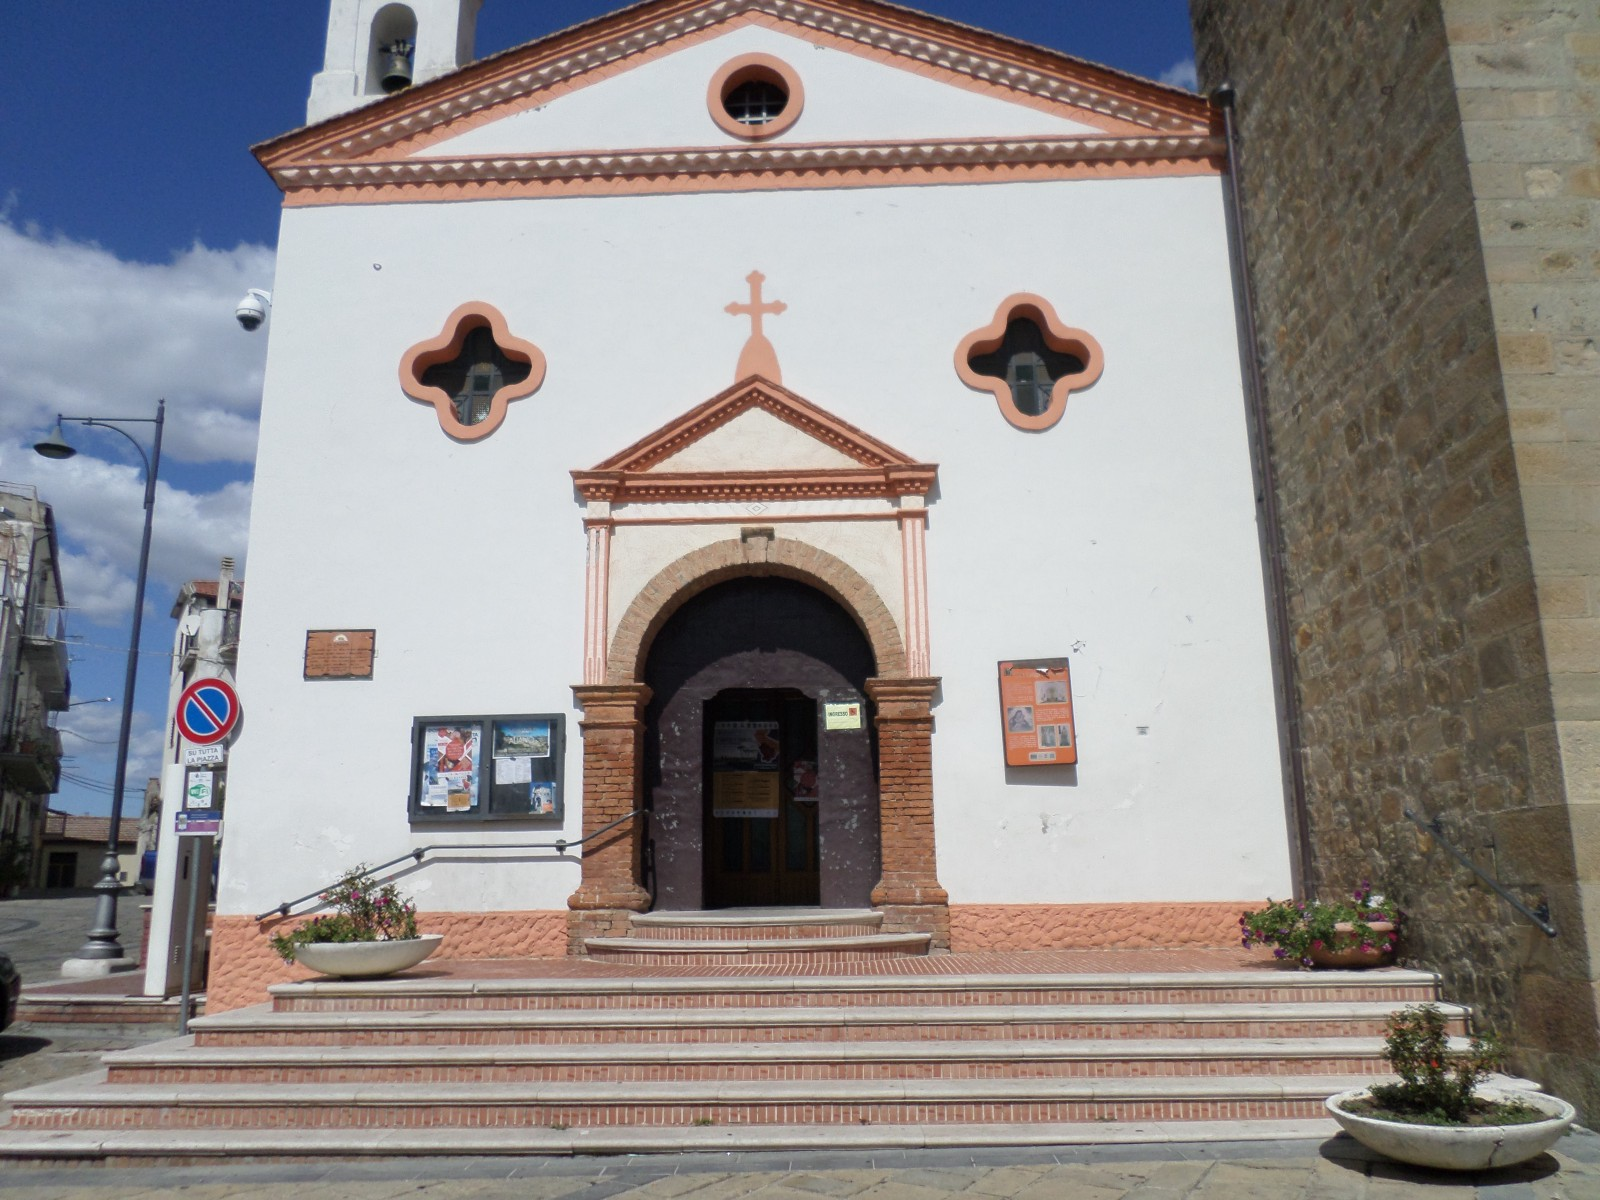 The church Aliano